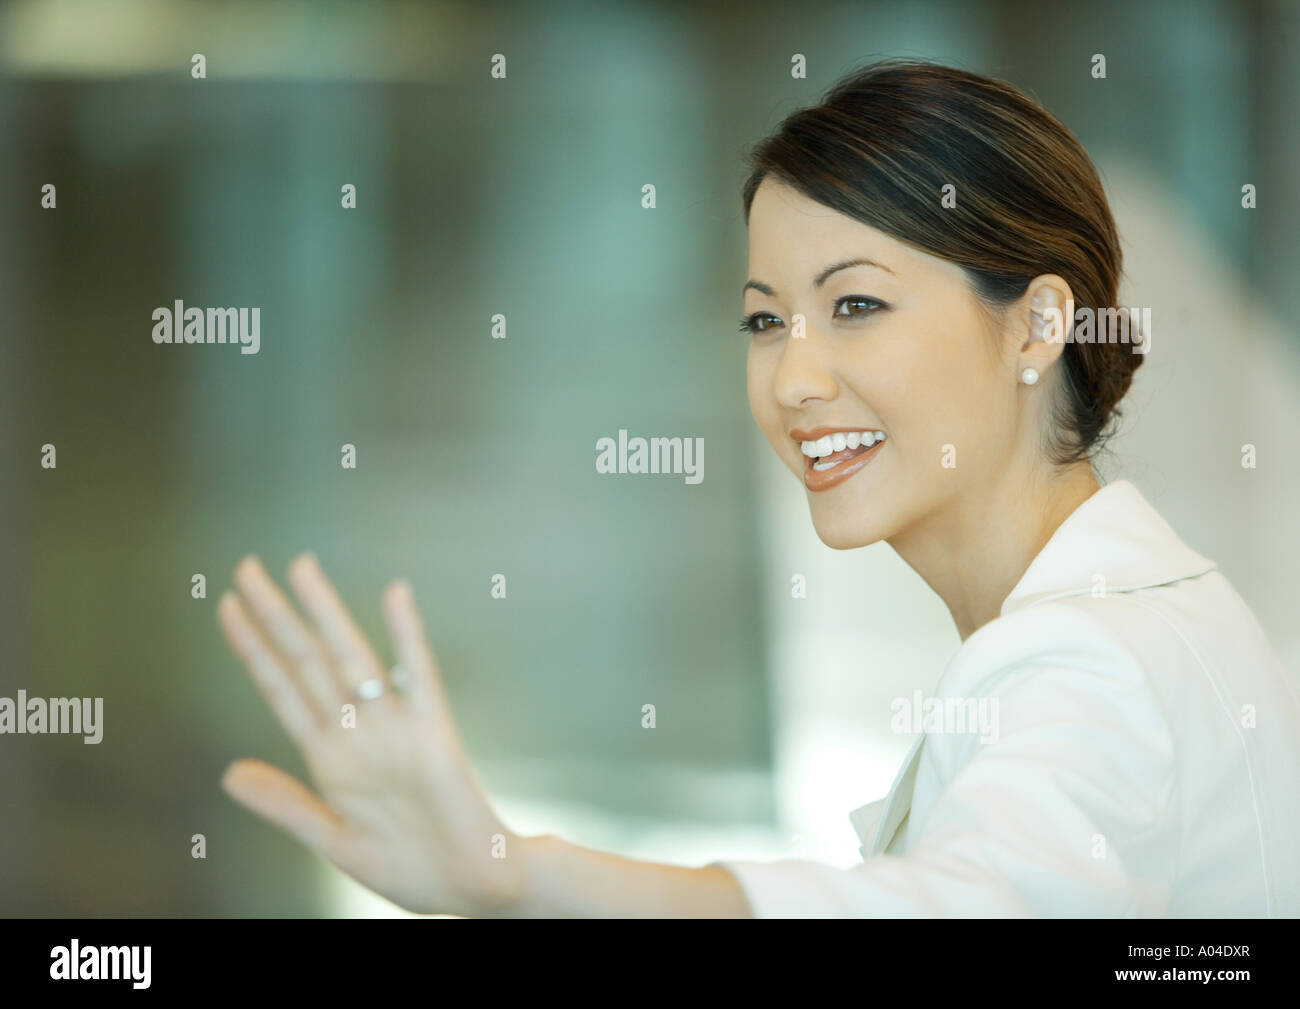 Woman waving - Stock Image